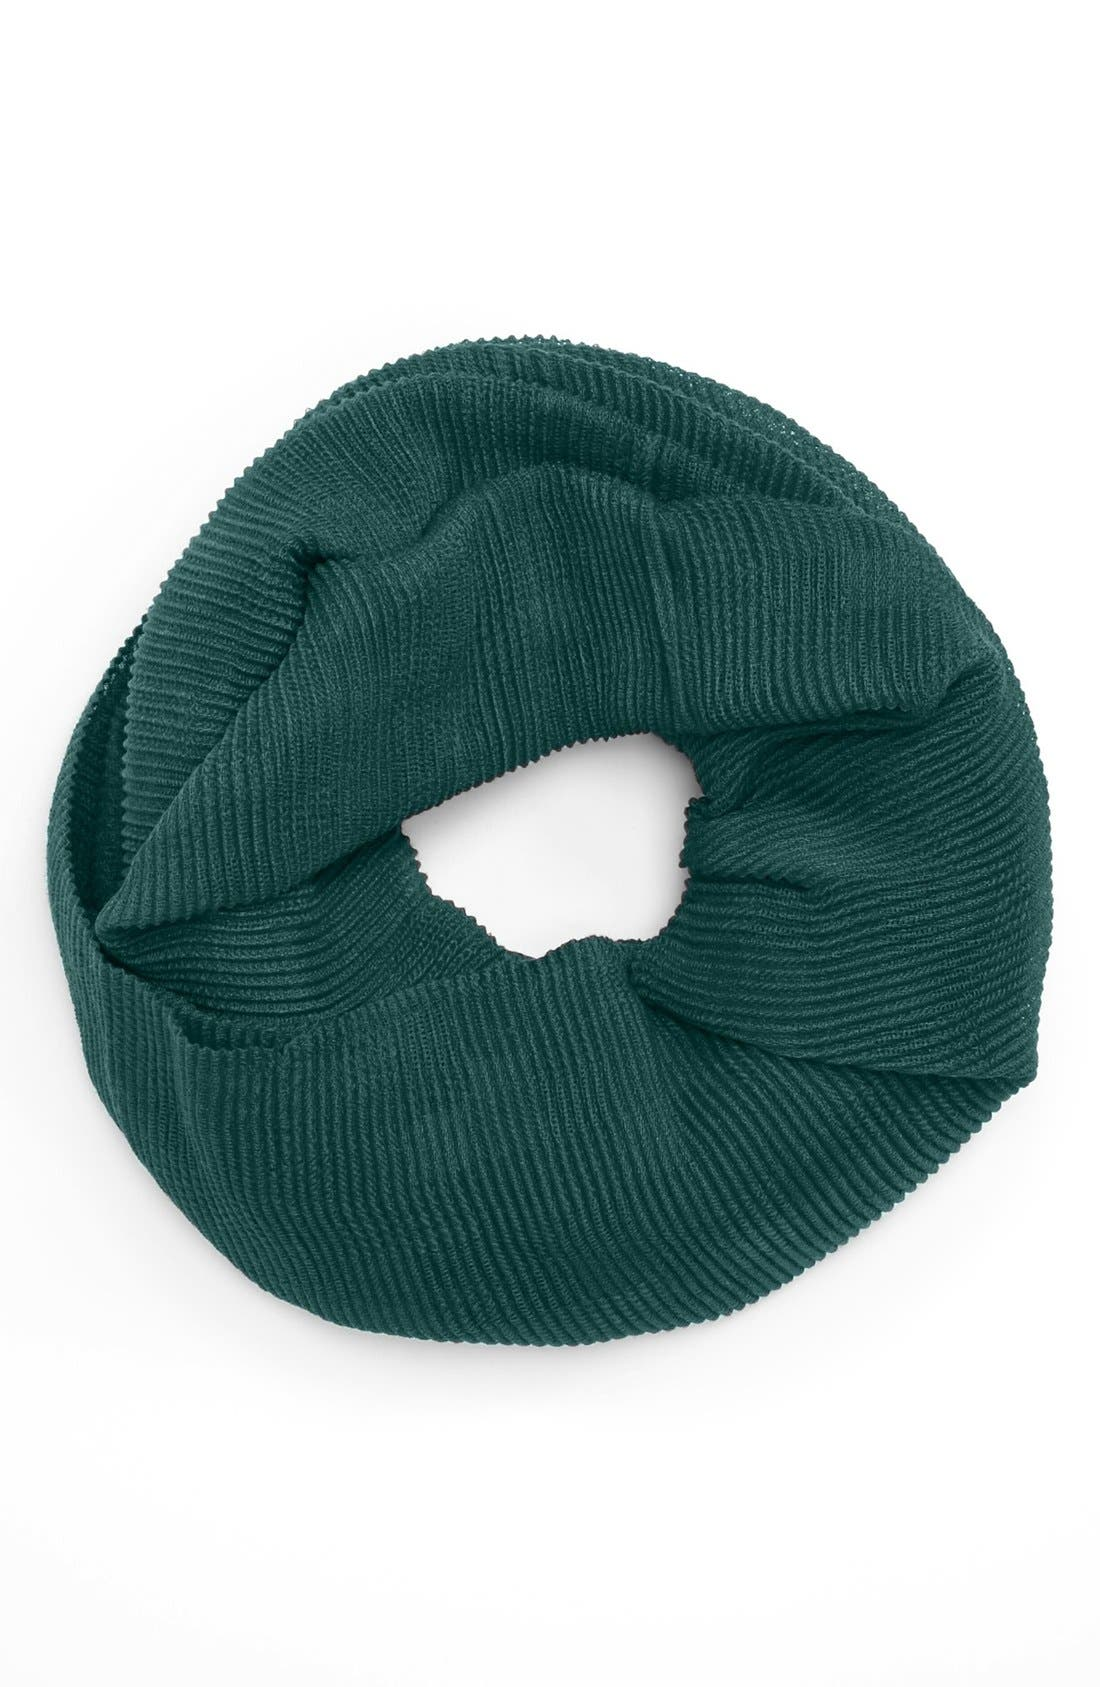 Alternate Image 1 Selected - Echo Pleated Infinity Scarf